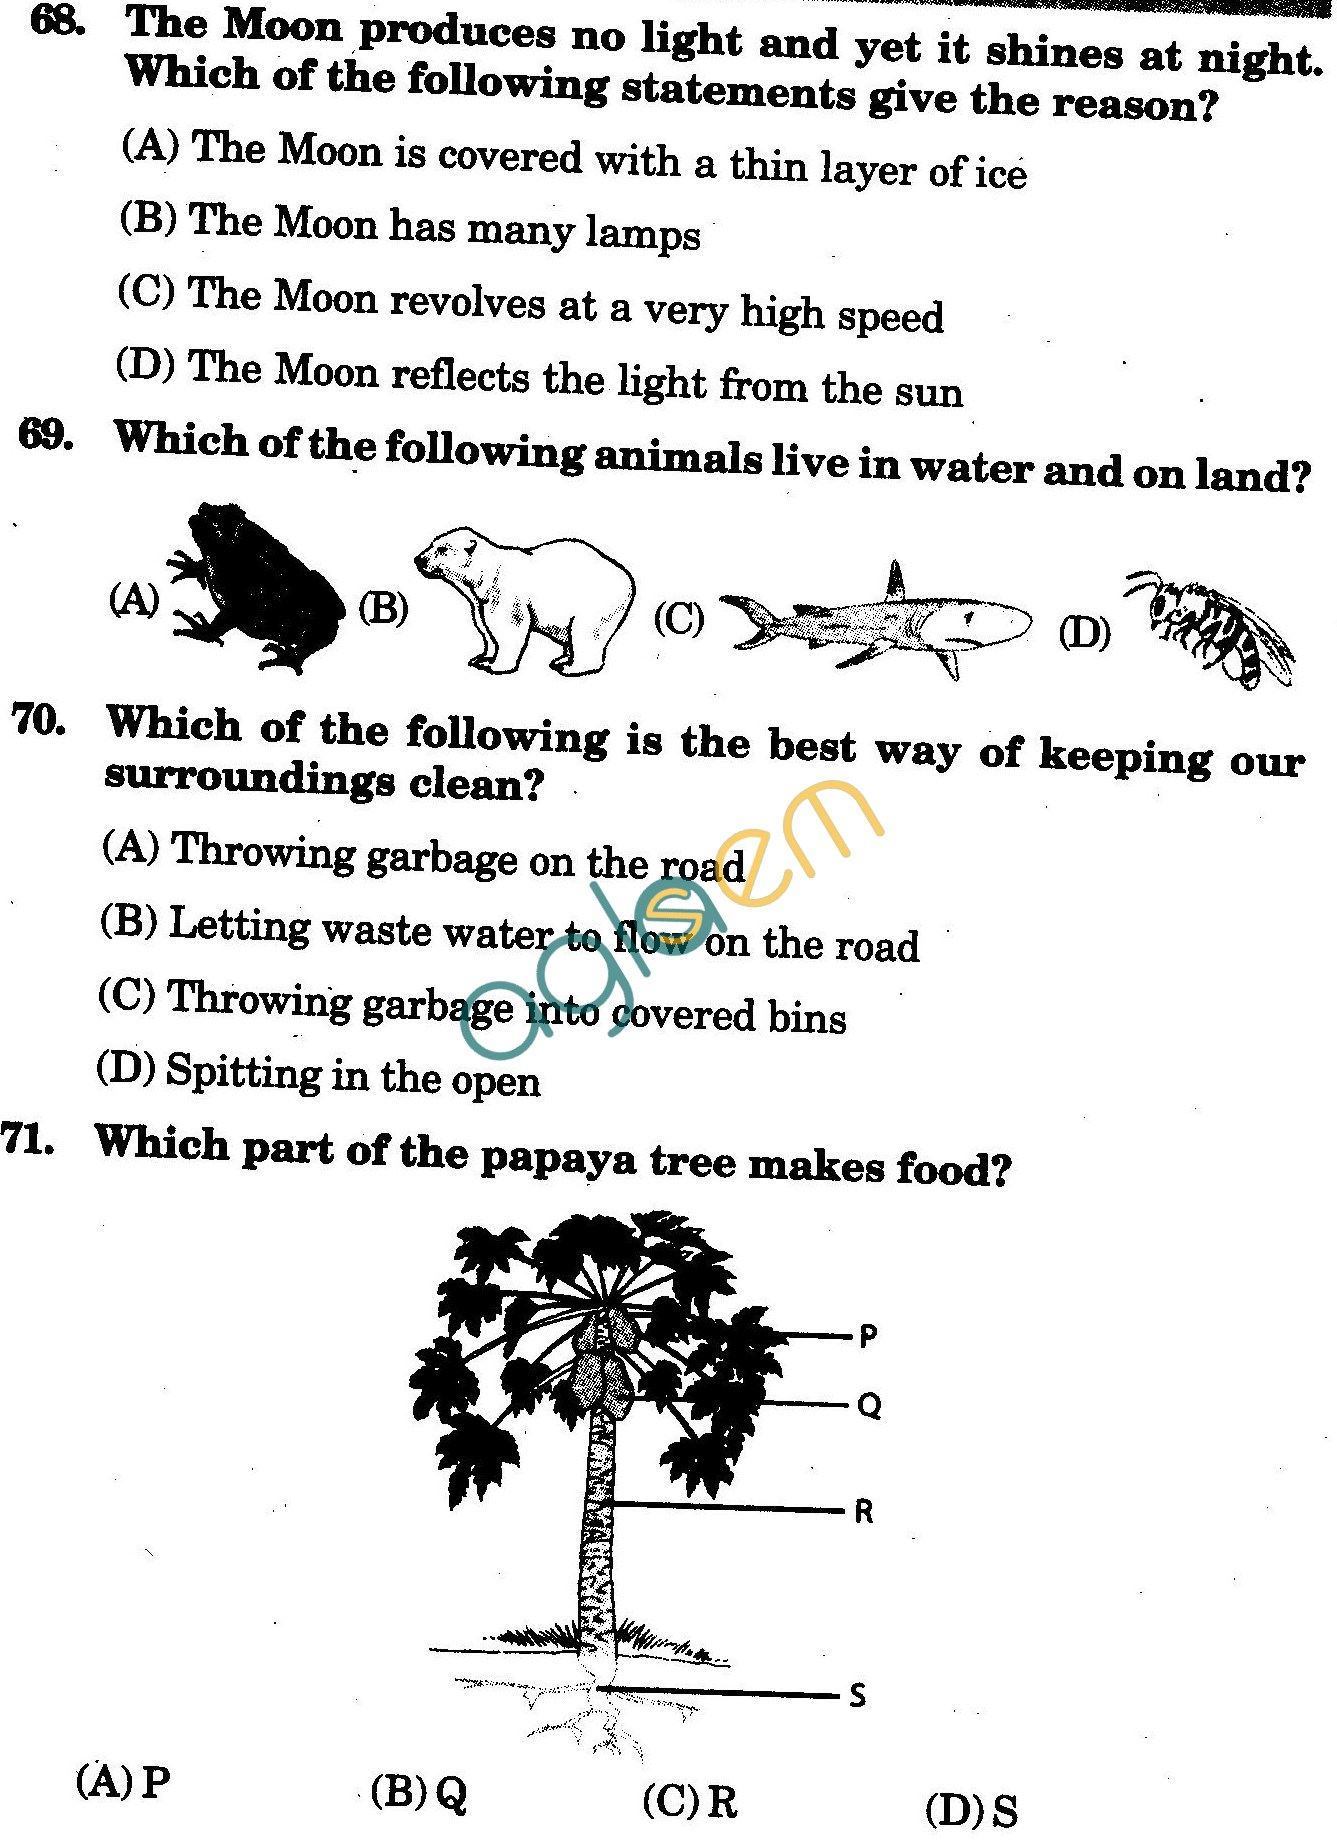 NSTSE 2010 Class III Question Paper with Answers - Science